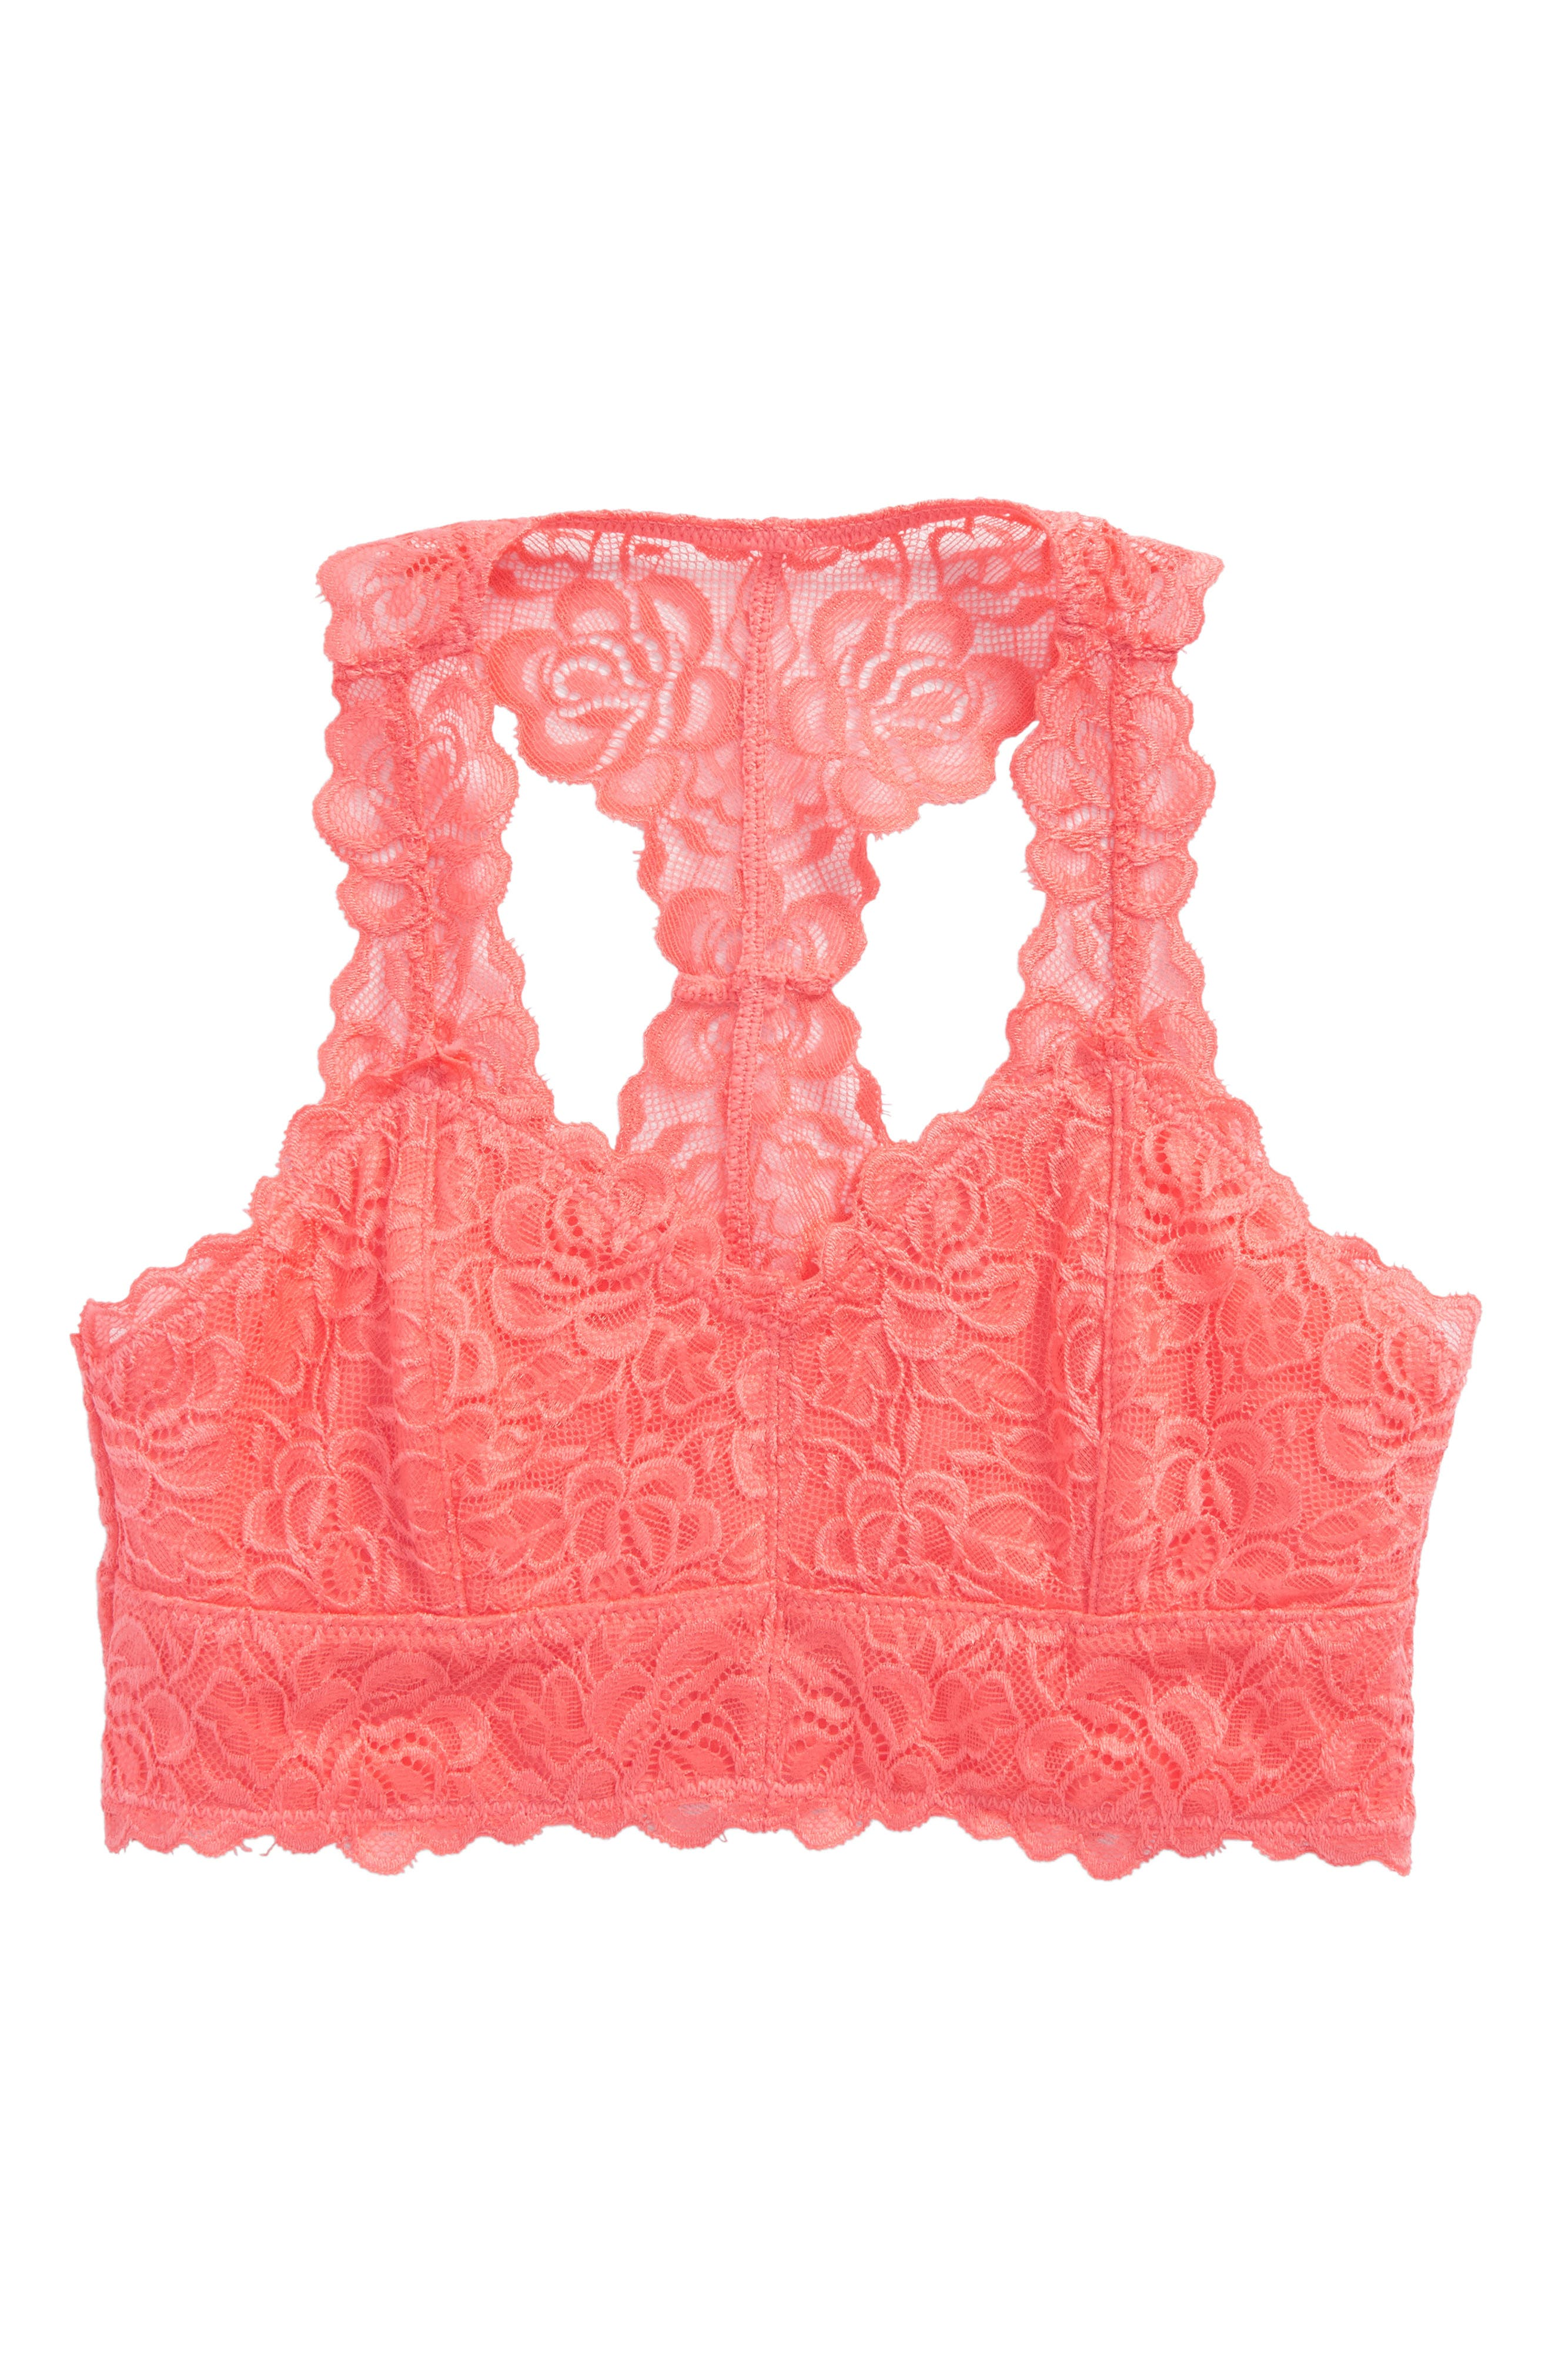 Alternate Image 1 Selected - Tucker + Tate Lace Bralette (Big Girls)